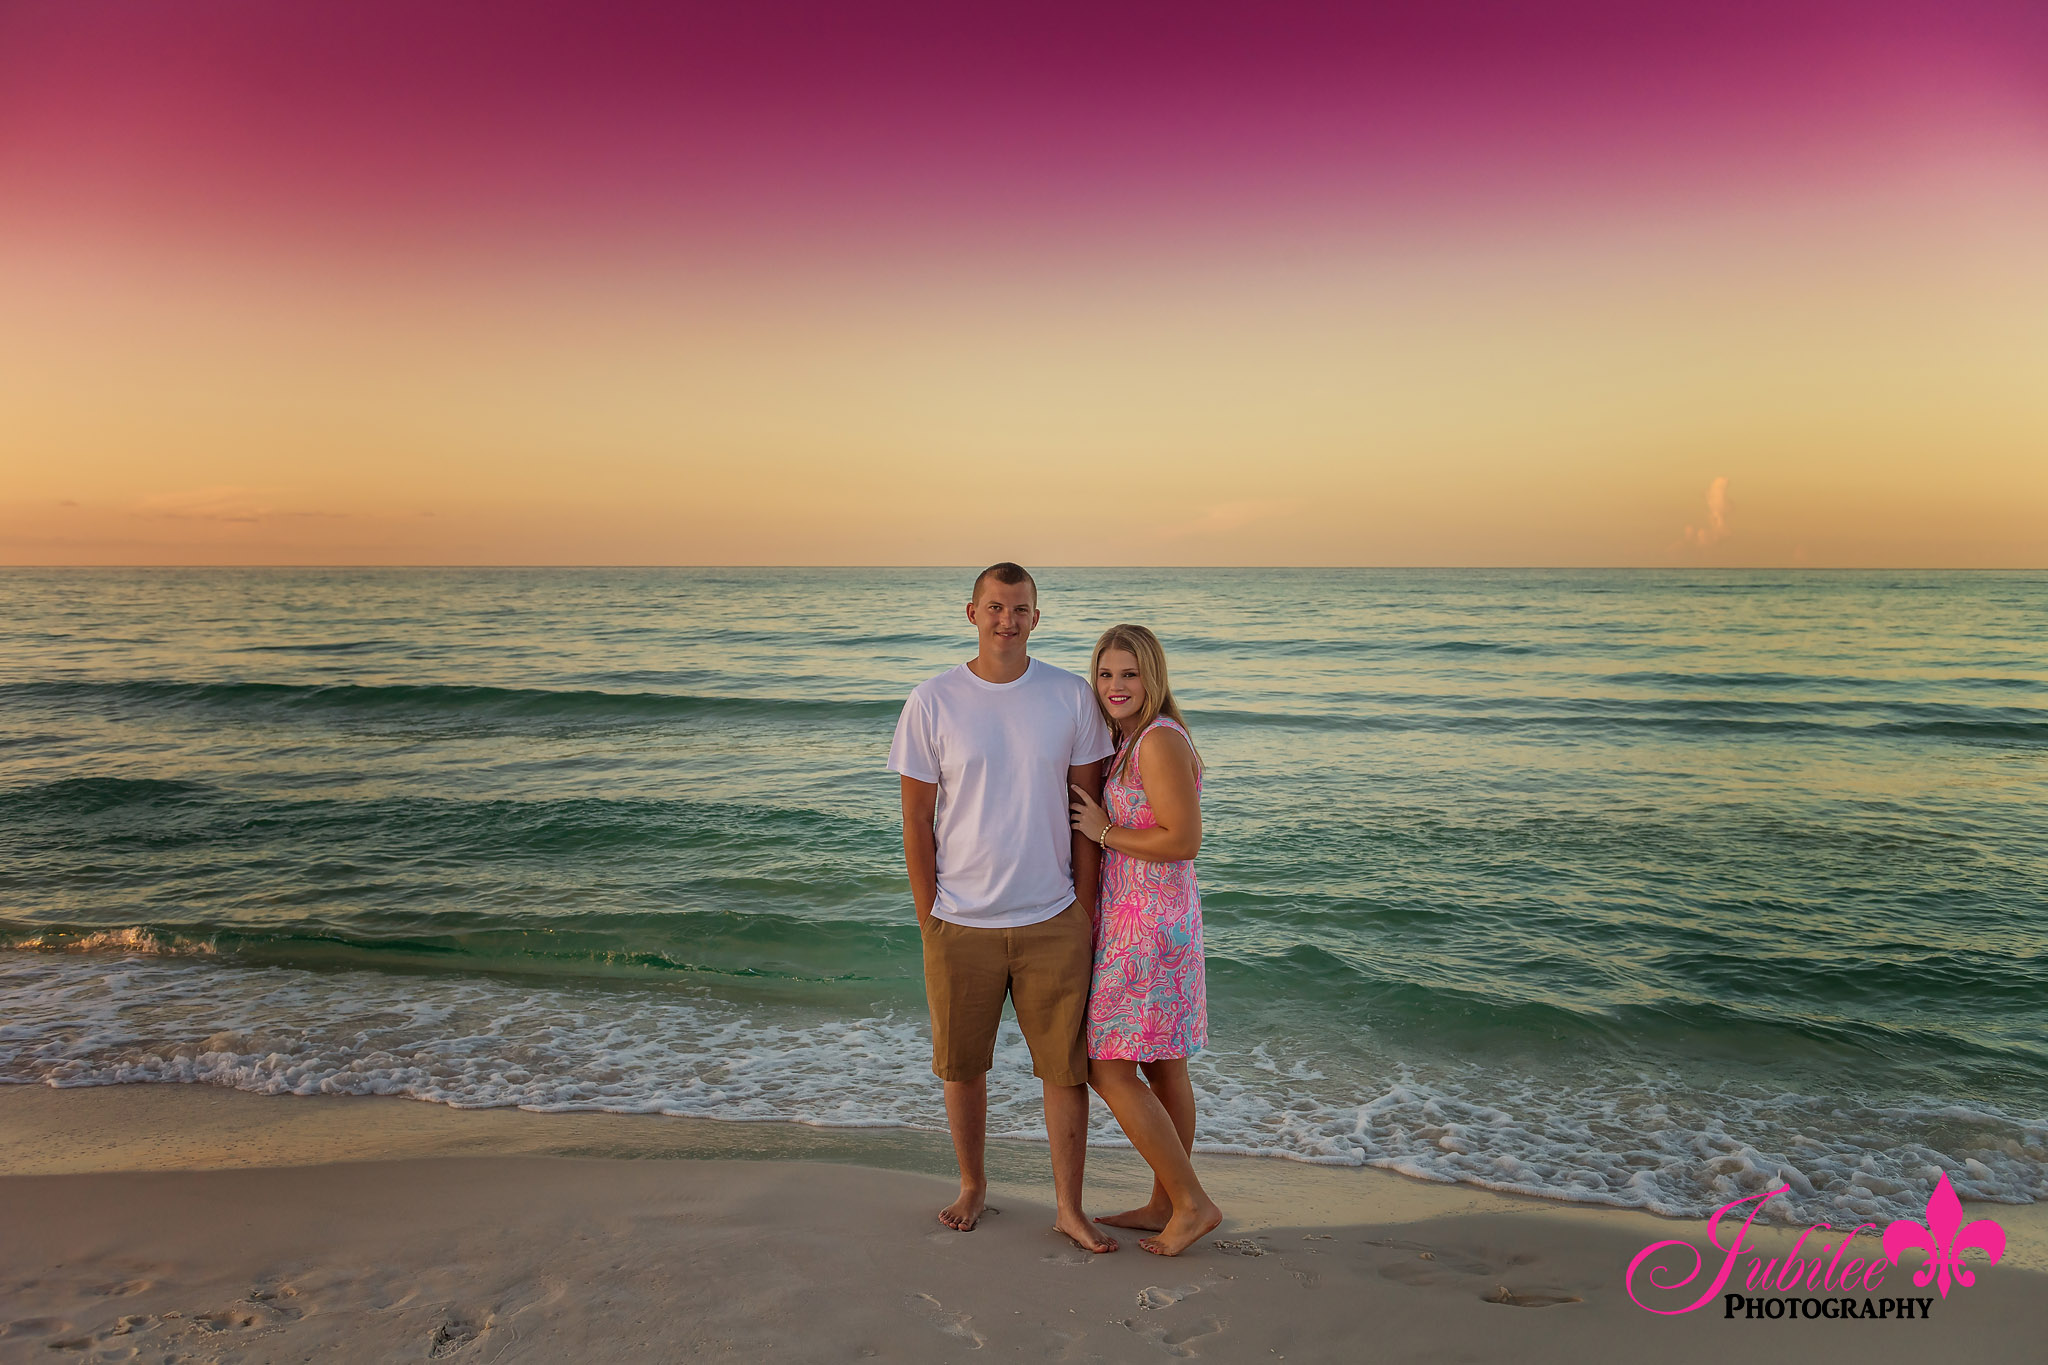 Destin_Sunrise_Photographer_0868